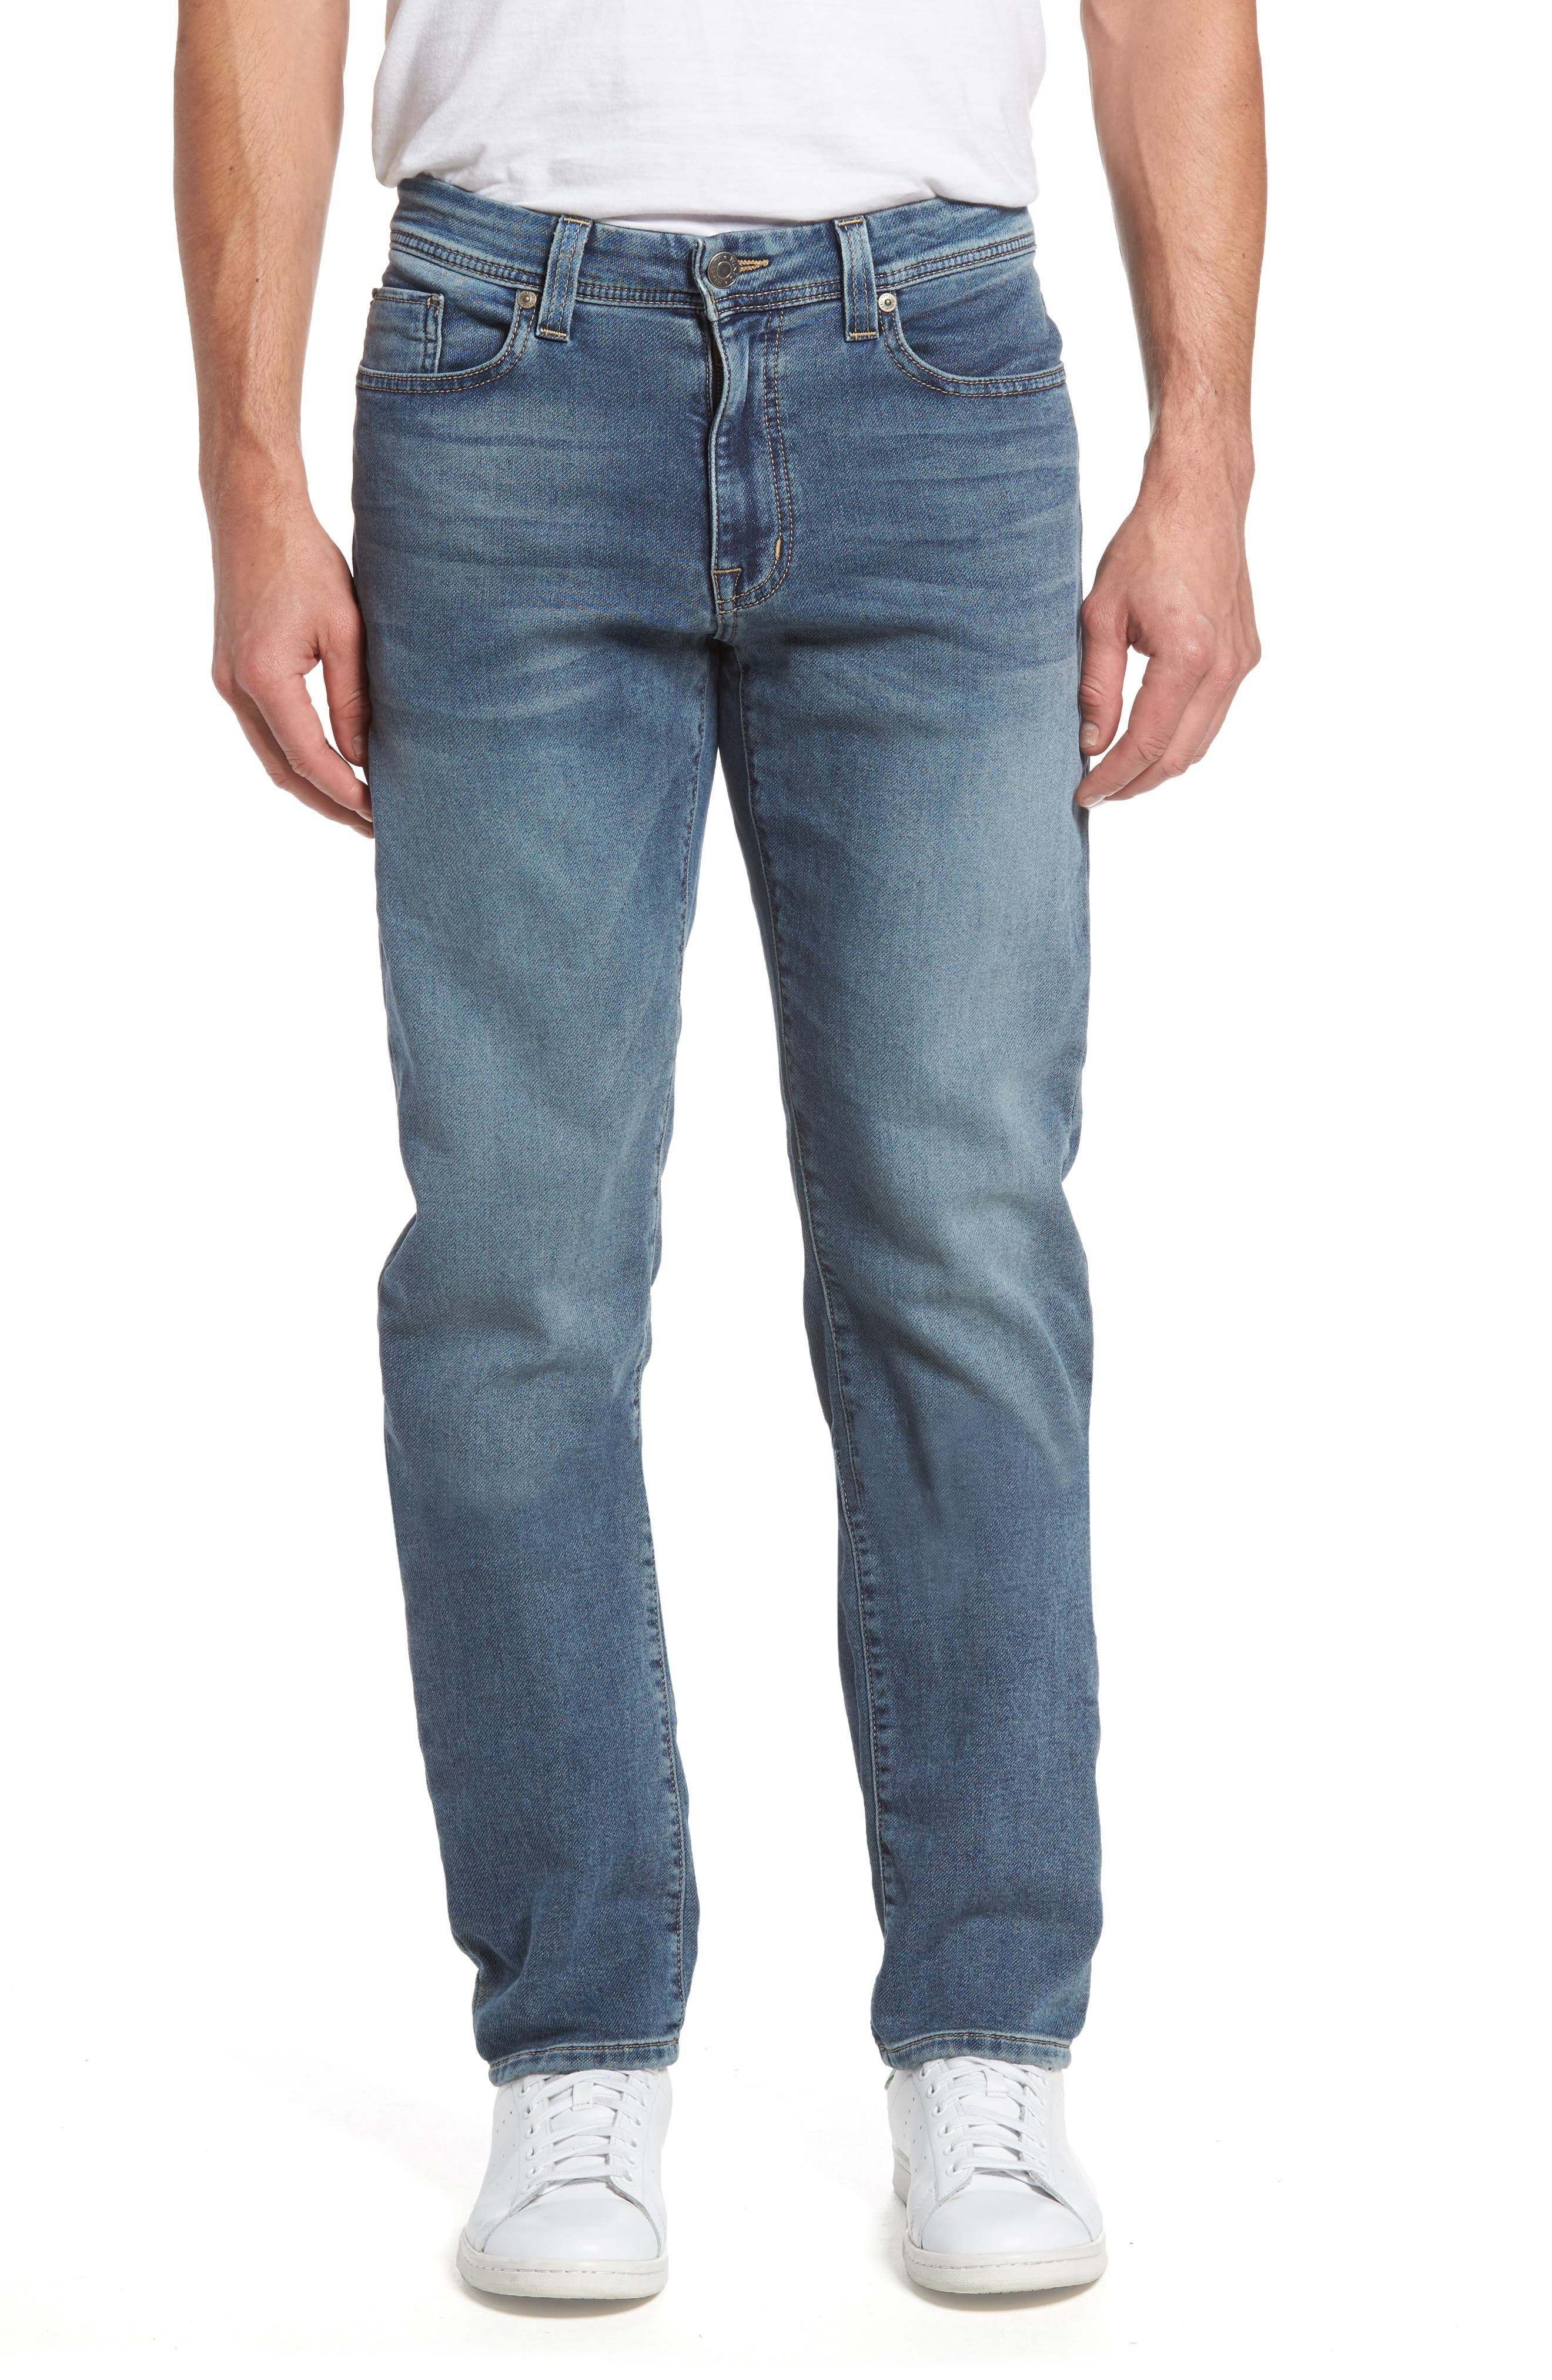 Jimmy Slim Straight Leg Jeans,                         Main,                         color, Oxy Vox Vintage